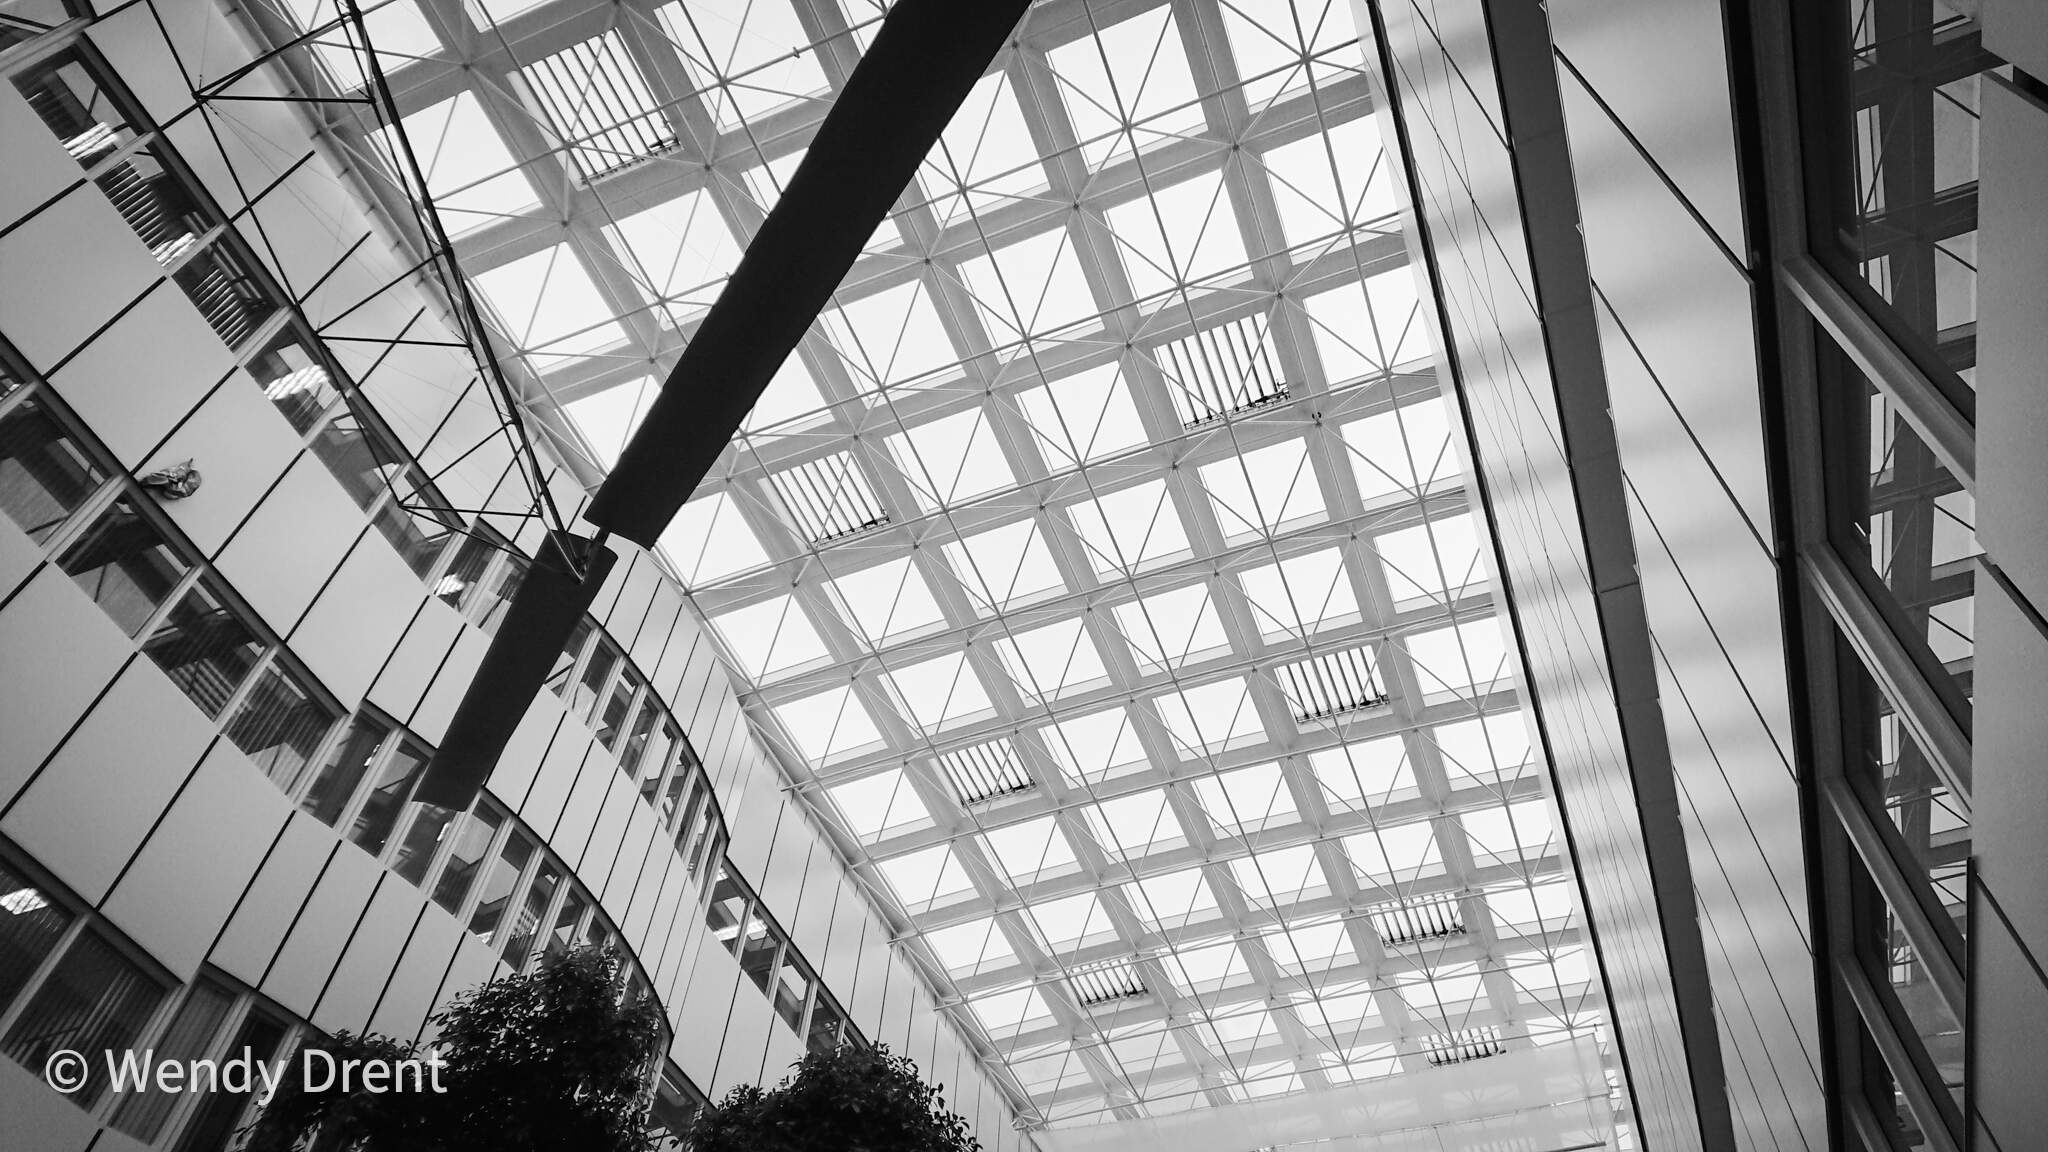 mumc+, wendydrent, architecture, black and white, abstract architecture, building, hospital, lines, light